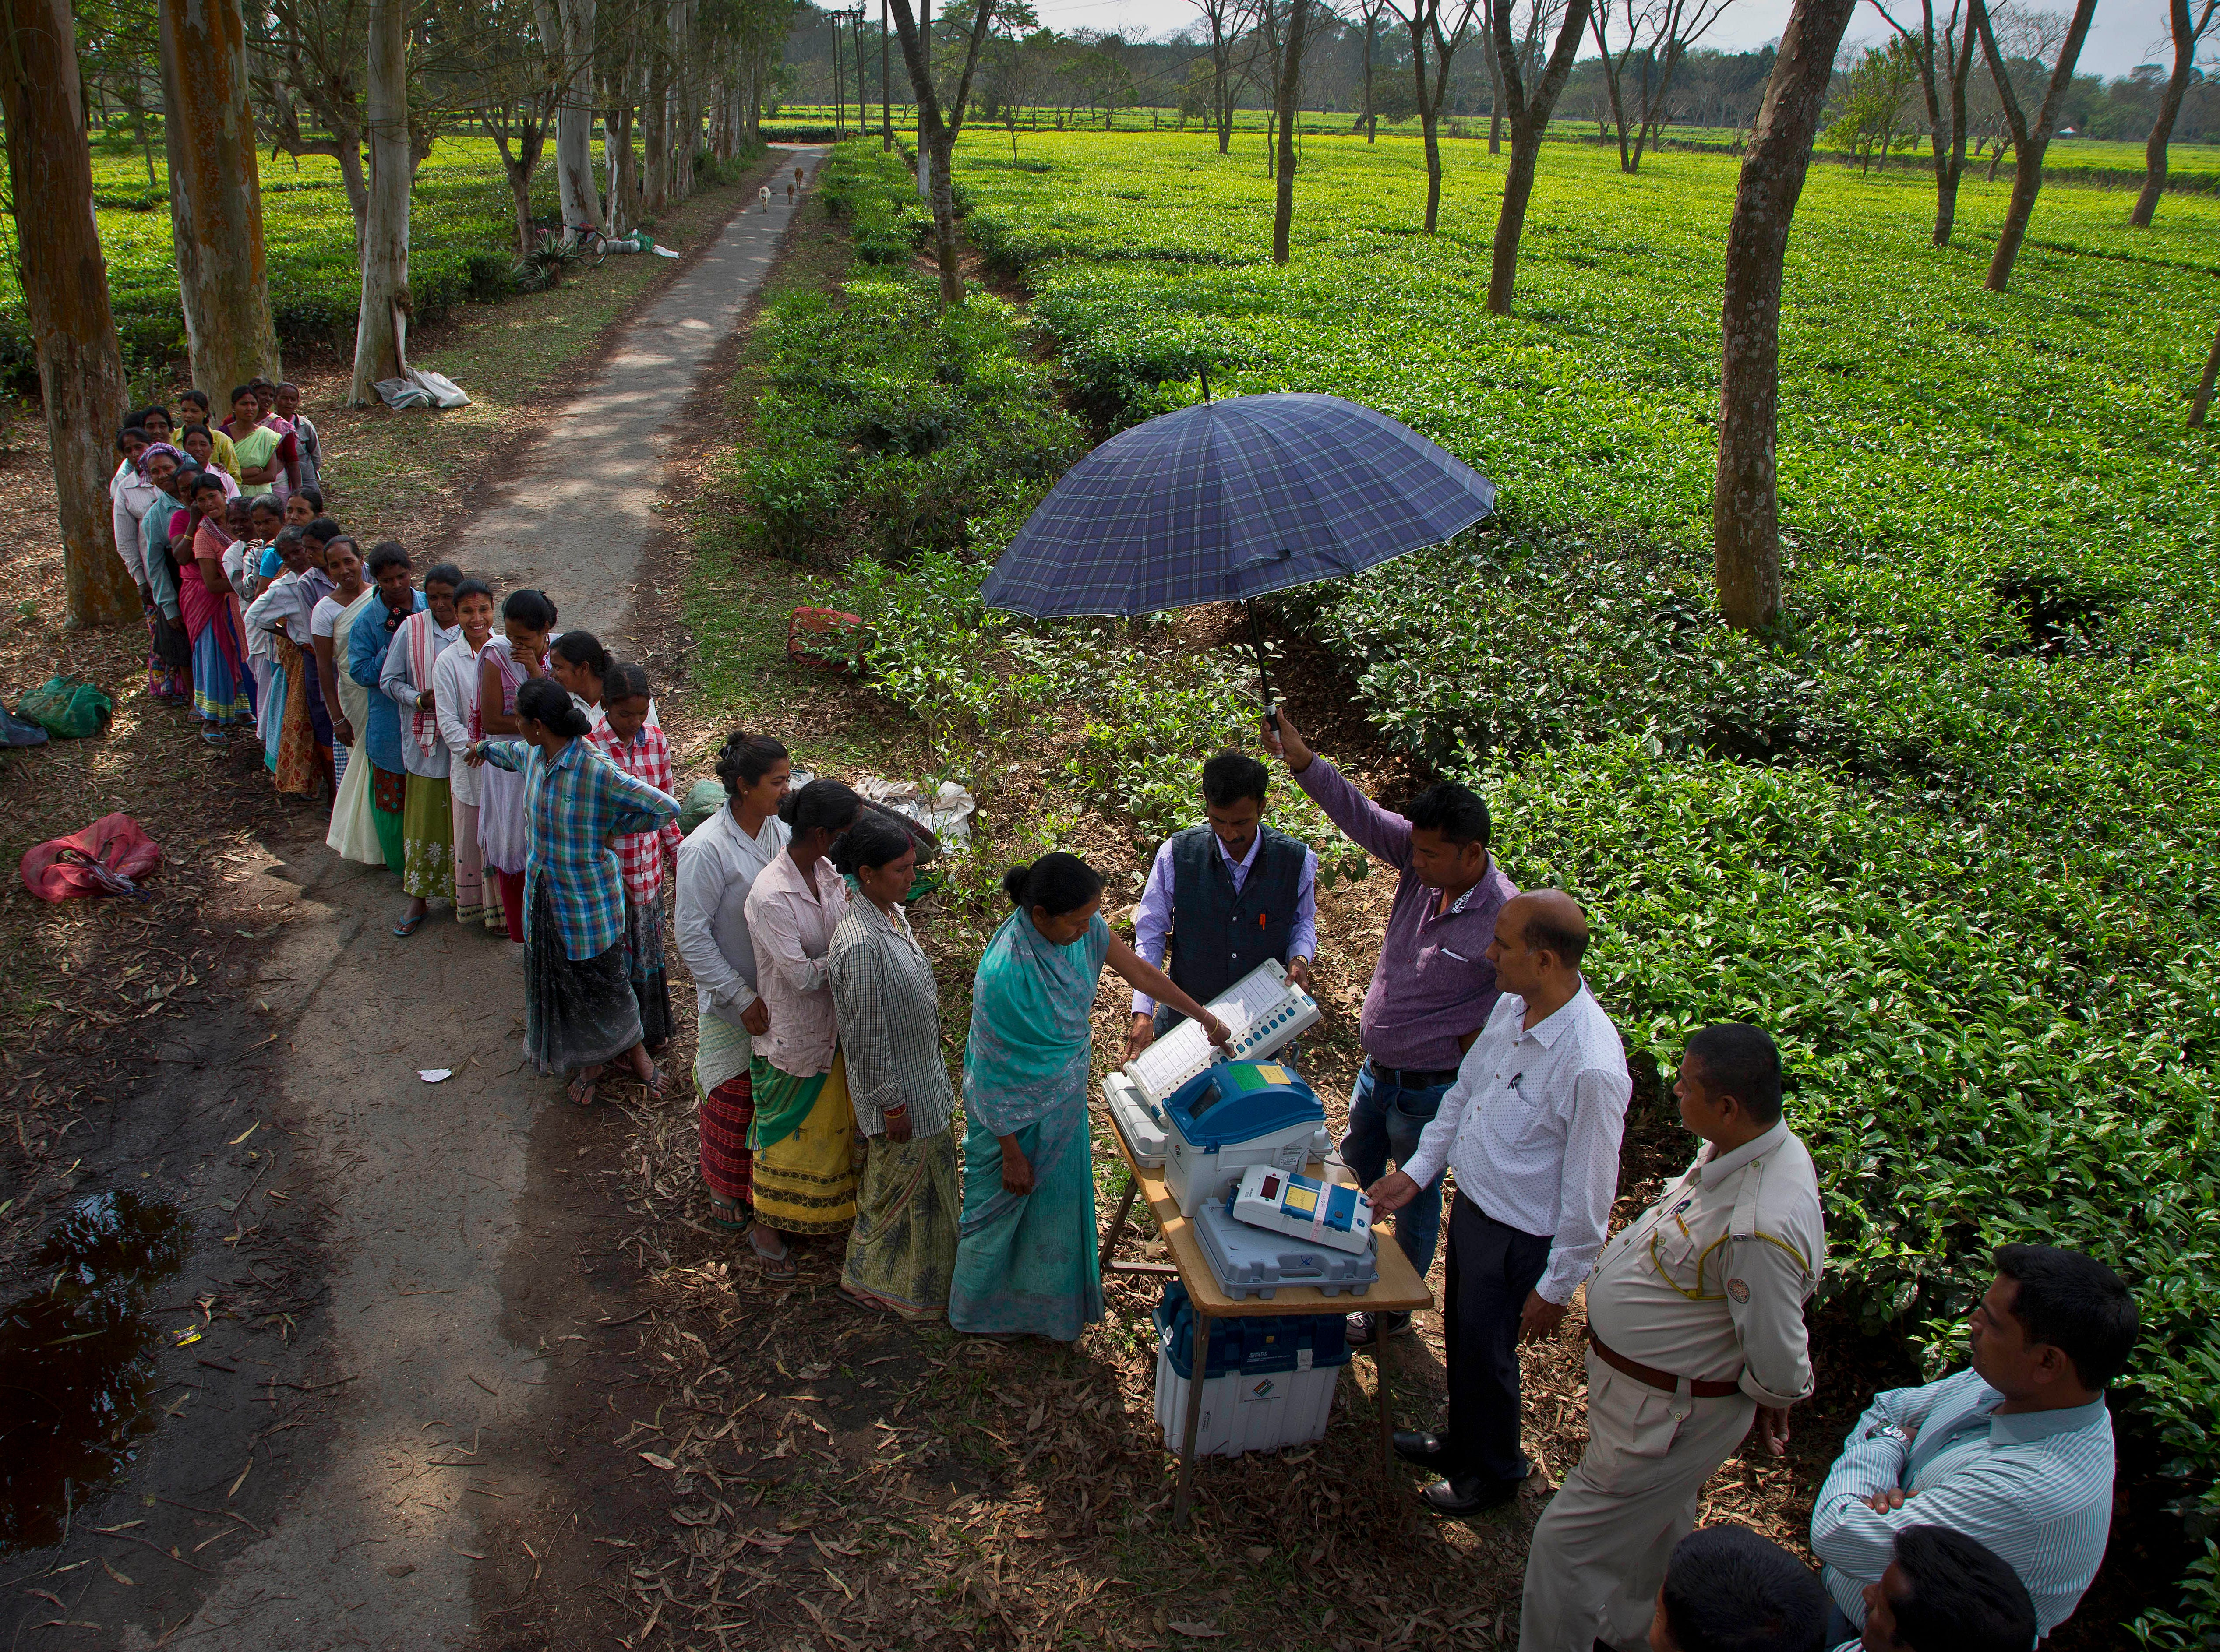 A woman casts her vote on the demo electronic voting machines and checks on Voter Verifiable Paper Audit Trail or VVPAT as others wait in the queue during an election awareness drive by district administration amongst the tea garden laborers ahead of India's general election in Jorhat, India, Monday, April 1, 2019. A VVPAT vending machine is an independent printing system connected to the electronic voting machines that allows voters to check that their votes are being cast as intended. The system will be used in the upcoming national elections to be held in seven phases starting from April 11. Votes will be counted on May 23.